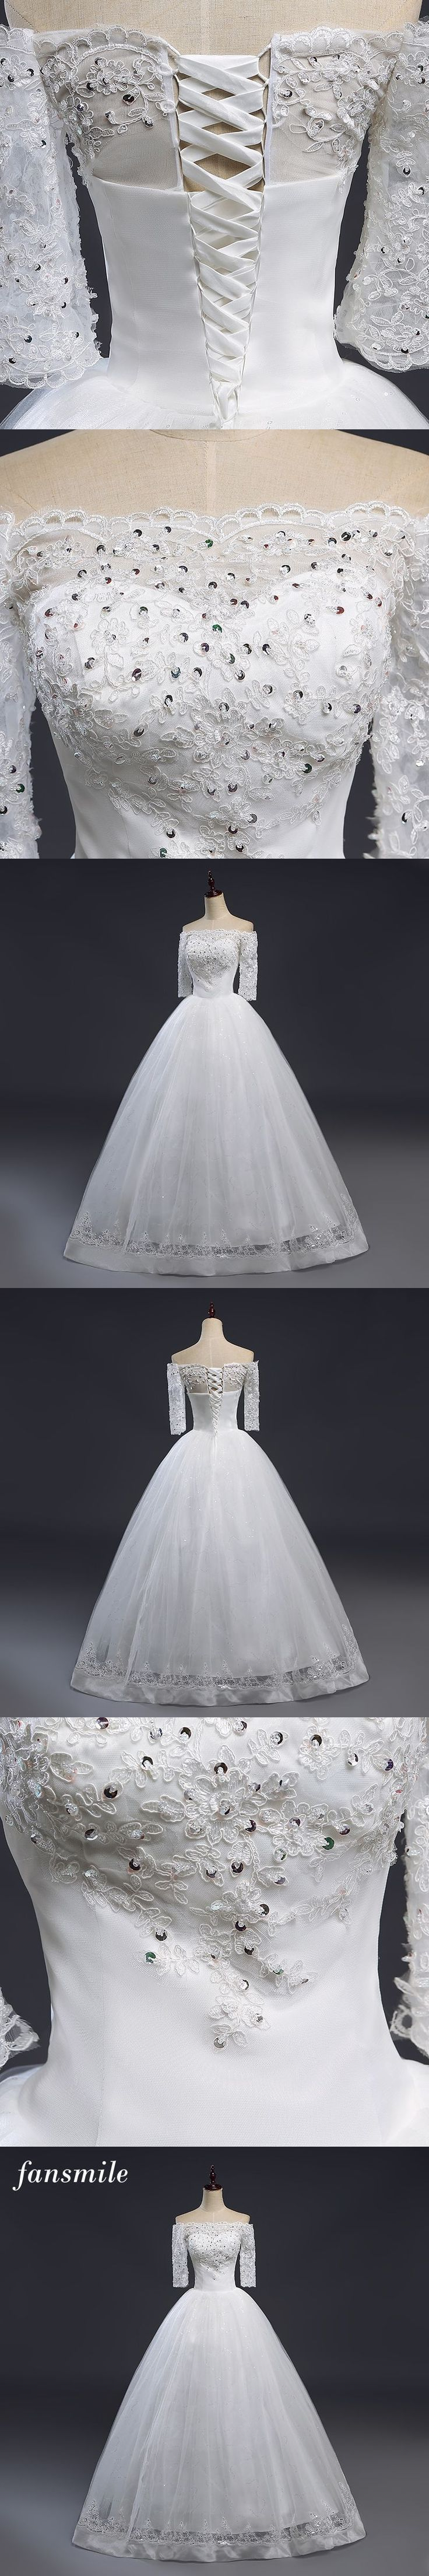 Fansmile Backless Frobes De Mariee Lace Up Ball Gown Wedding Dresses 2017 Plus Size Bridal Dress Wedding Gown Real Photo #plussizeweddingdresses